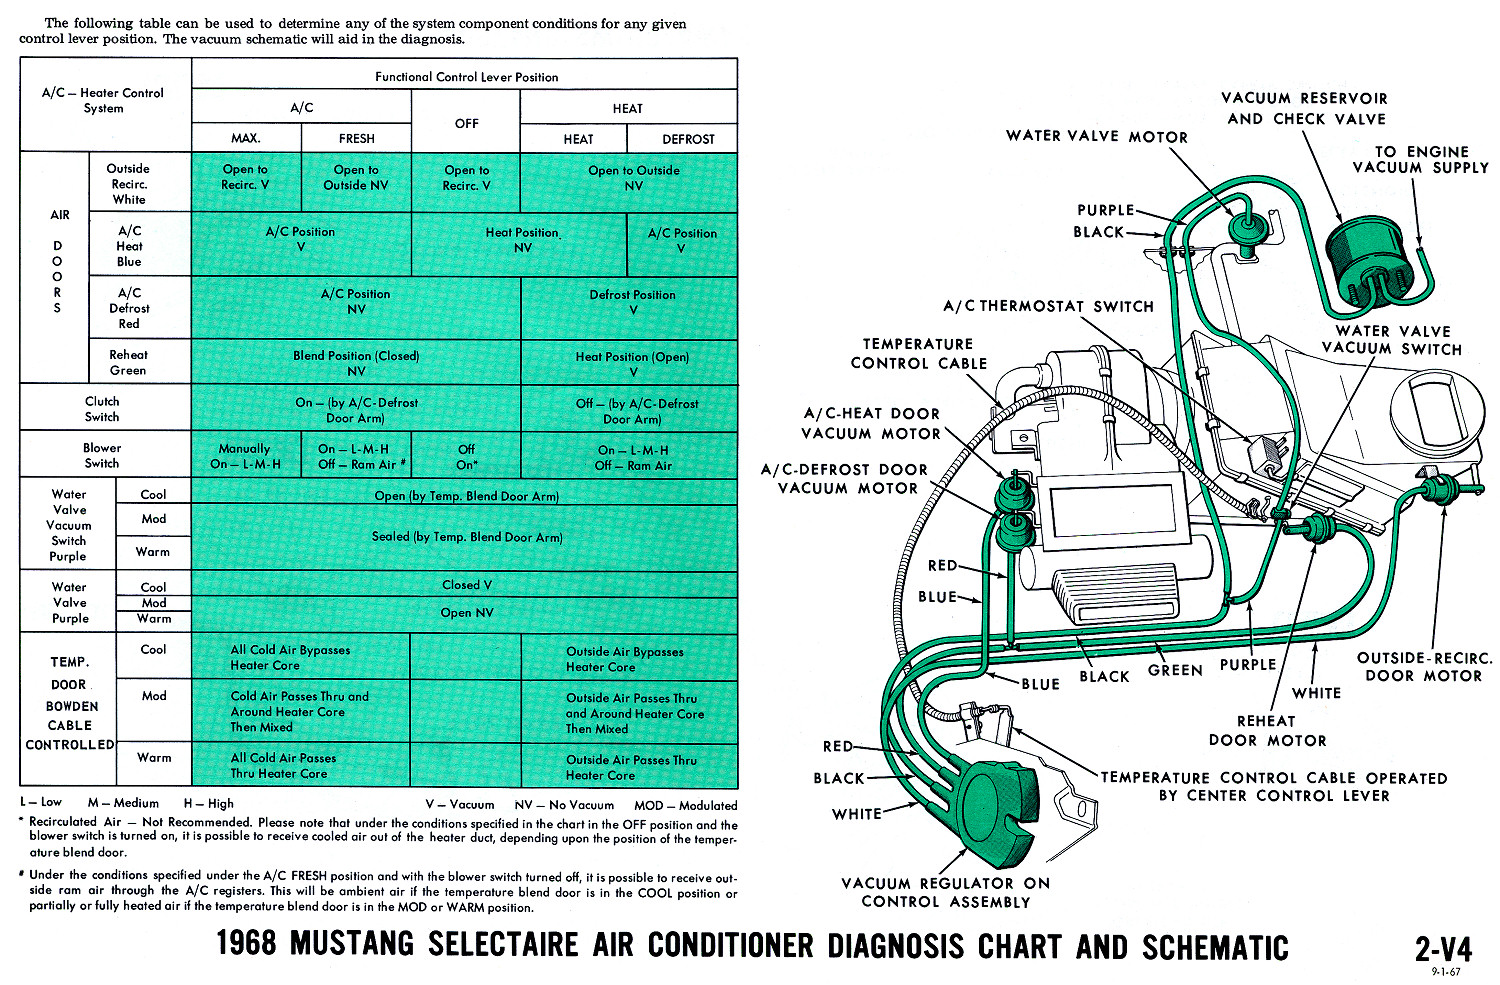 1968 mustang vacuum diagrams evolving software 1967 chevy wiring diagram 1967 chevy wiring diagram 1967 chevy wiring diagram 1967 chevy wiring diagram